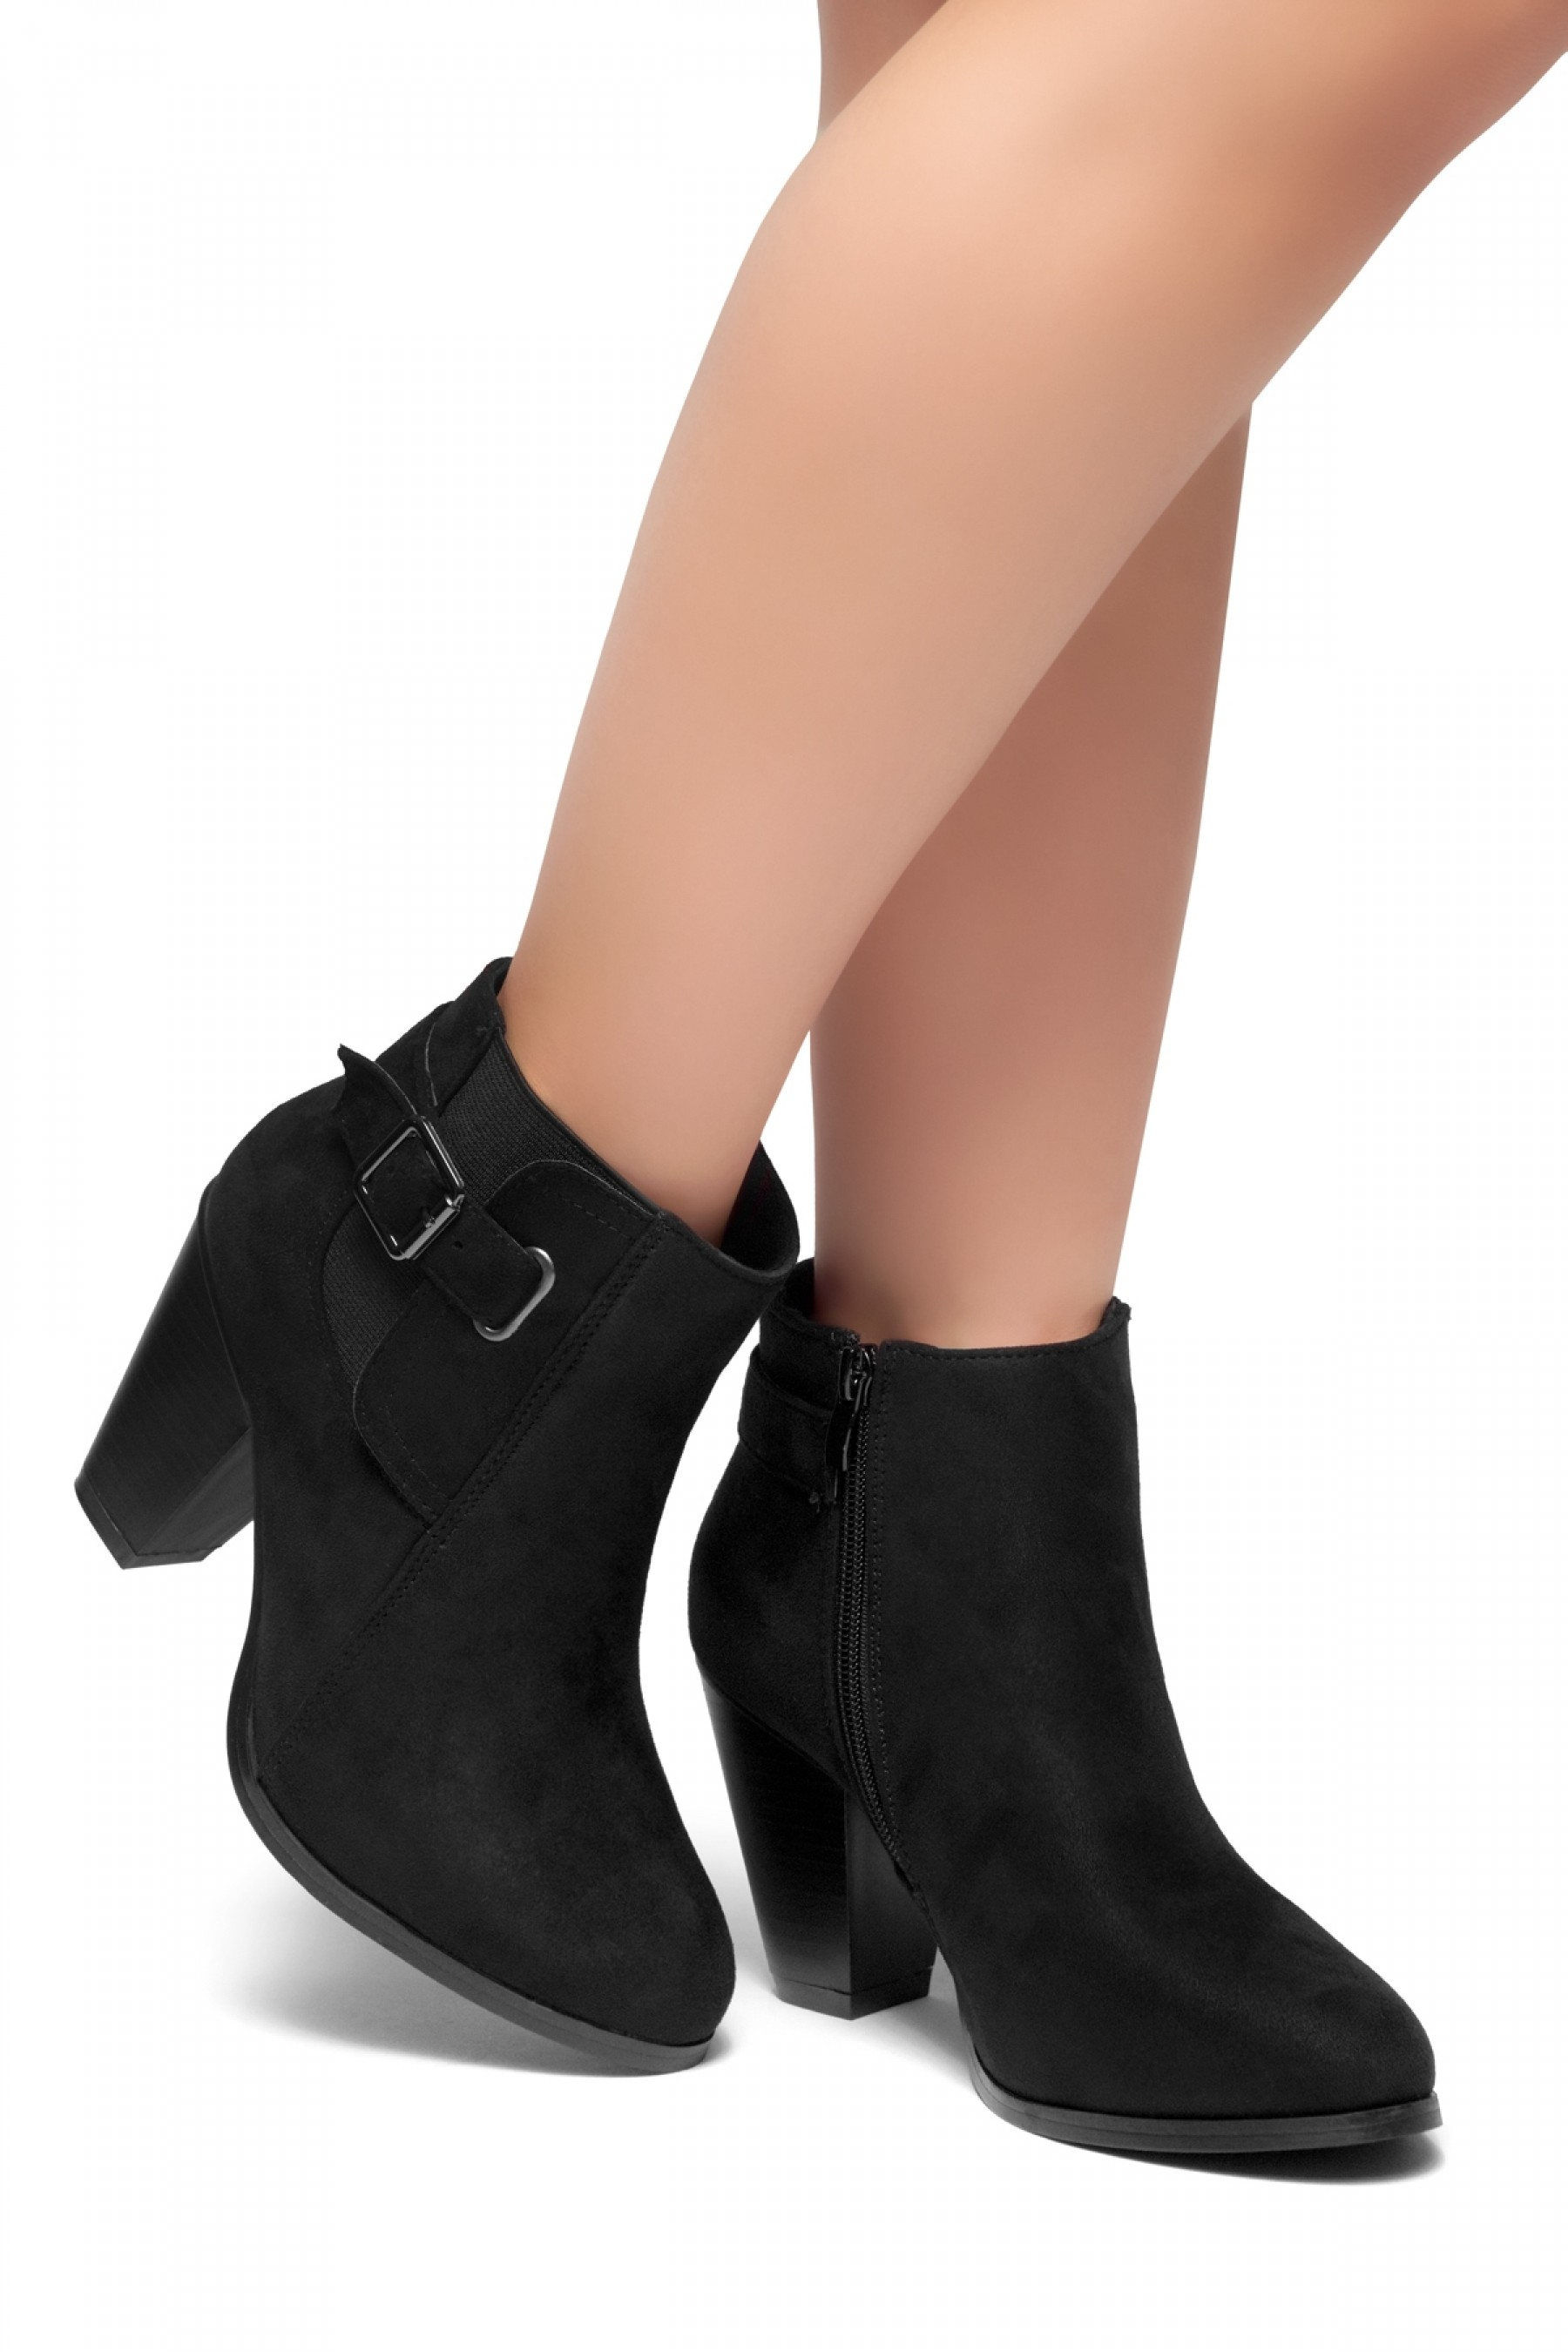 herstyle alenema almont toe stacked heel booties black